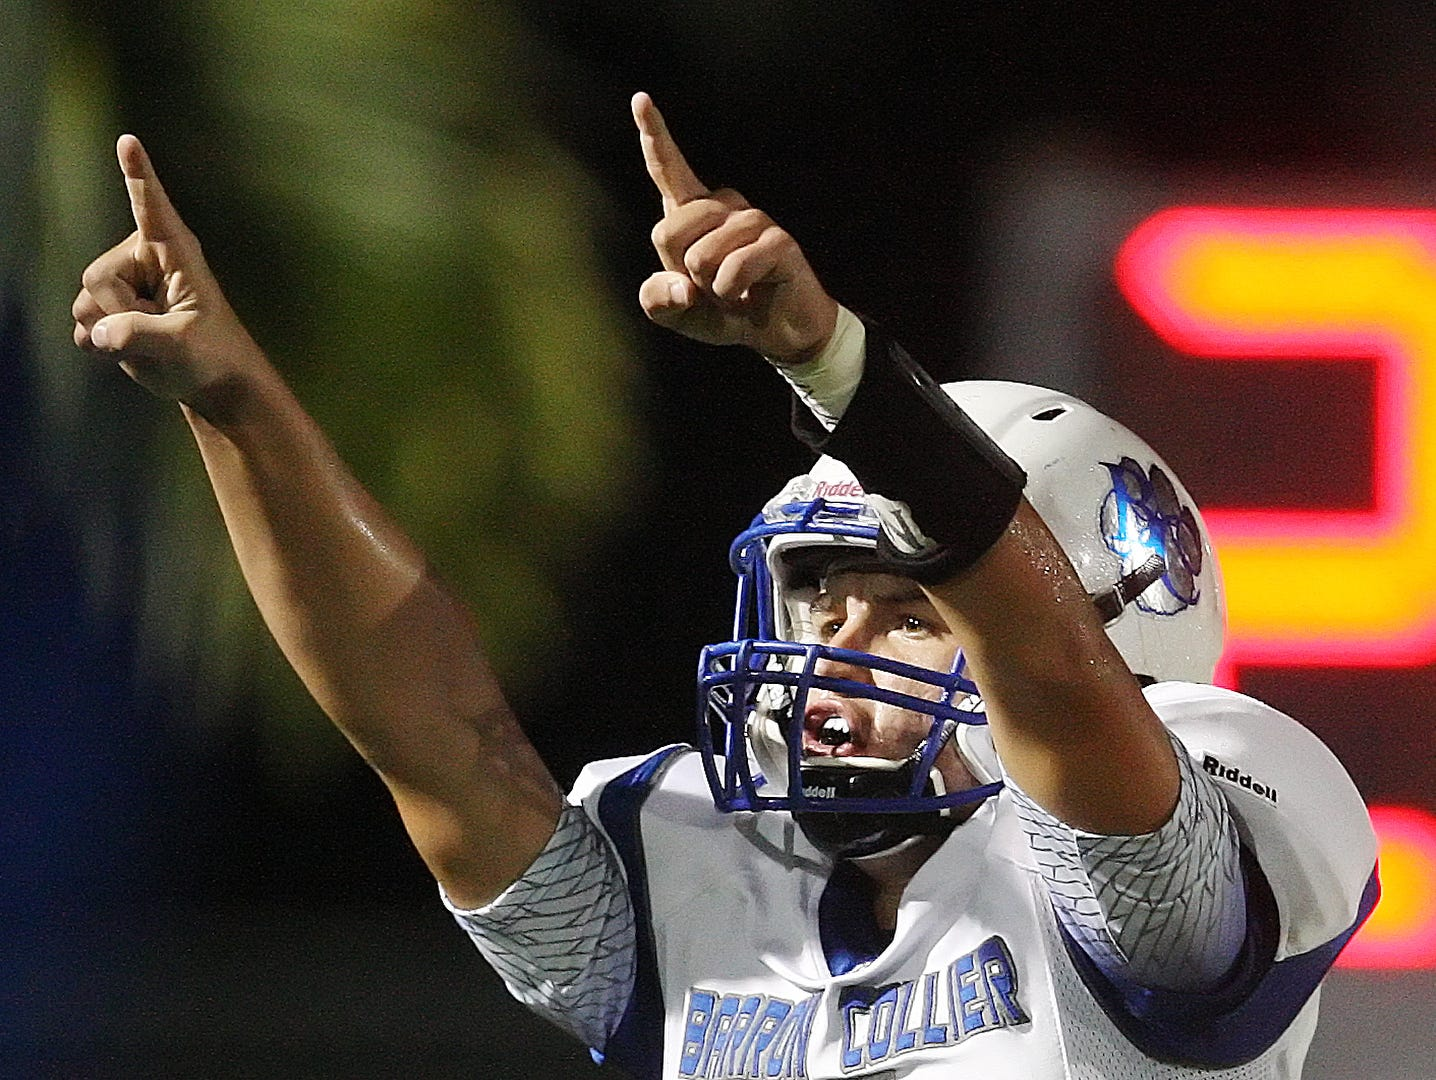 Barron Collier High School's Jack Bueldel celebrates throwing a touchdown pass Friday at Gulf Coast High School in Naples. Barron Collier beat Gulf Coast 21-15.